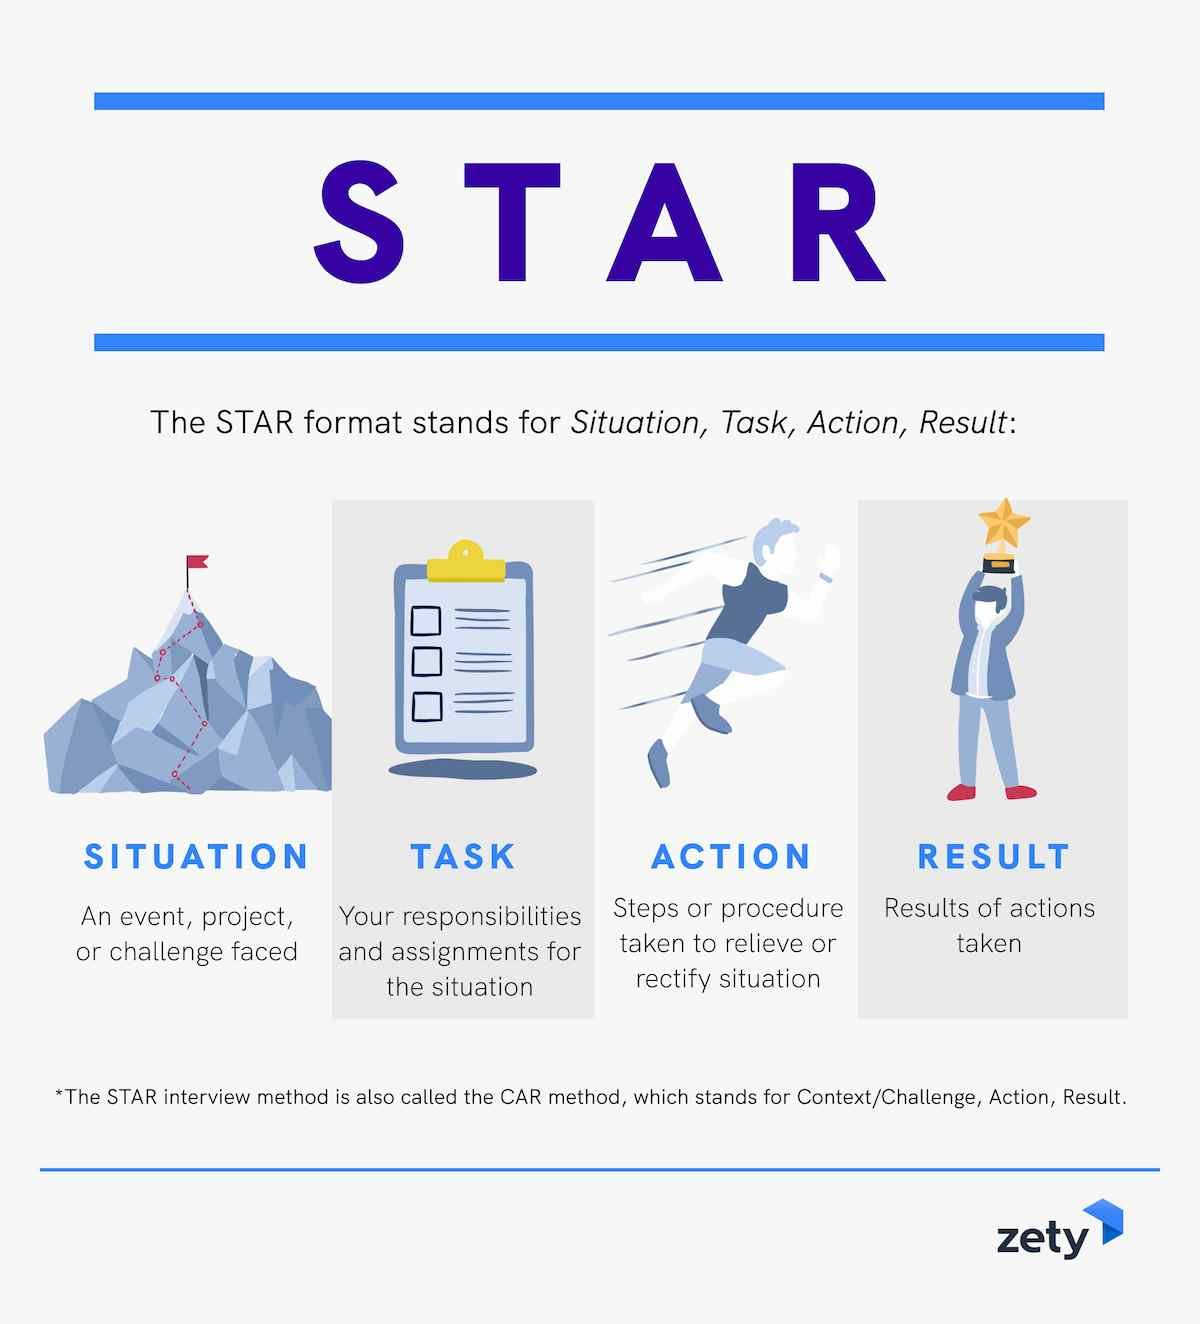 What is The STAR interview method